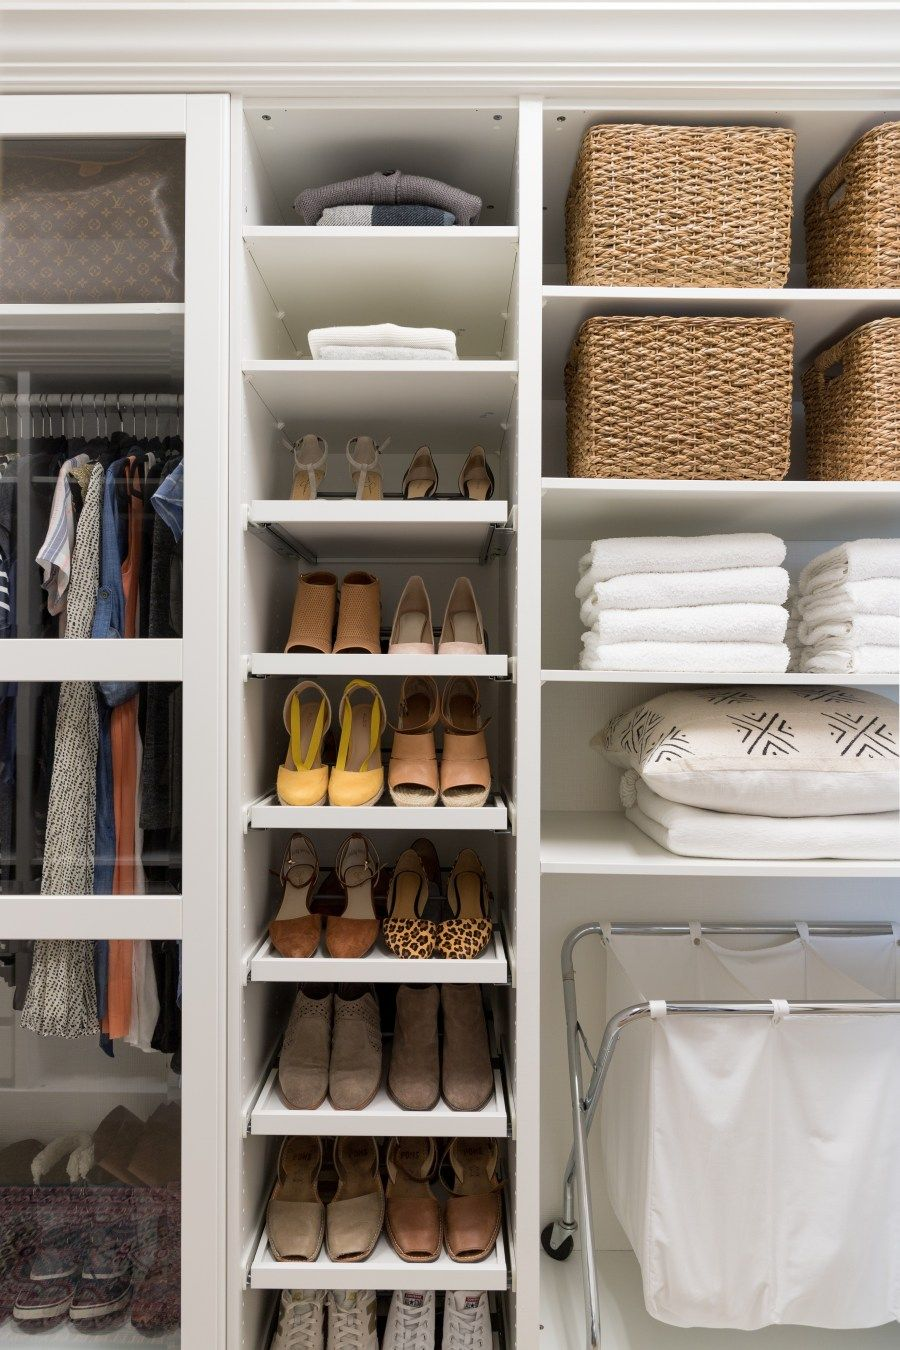 Walk In Closet Makeover With Ikea Pax In 2020 Closet Makeover Ikea Closet Hack Ikea Pax Closet